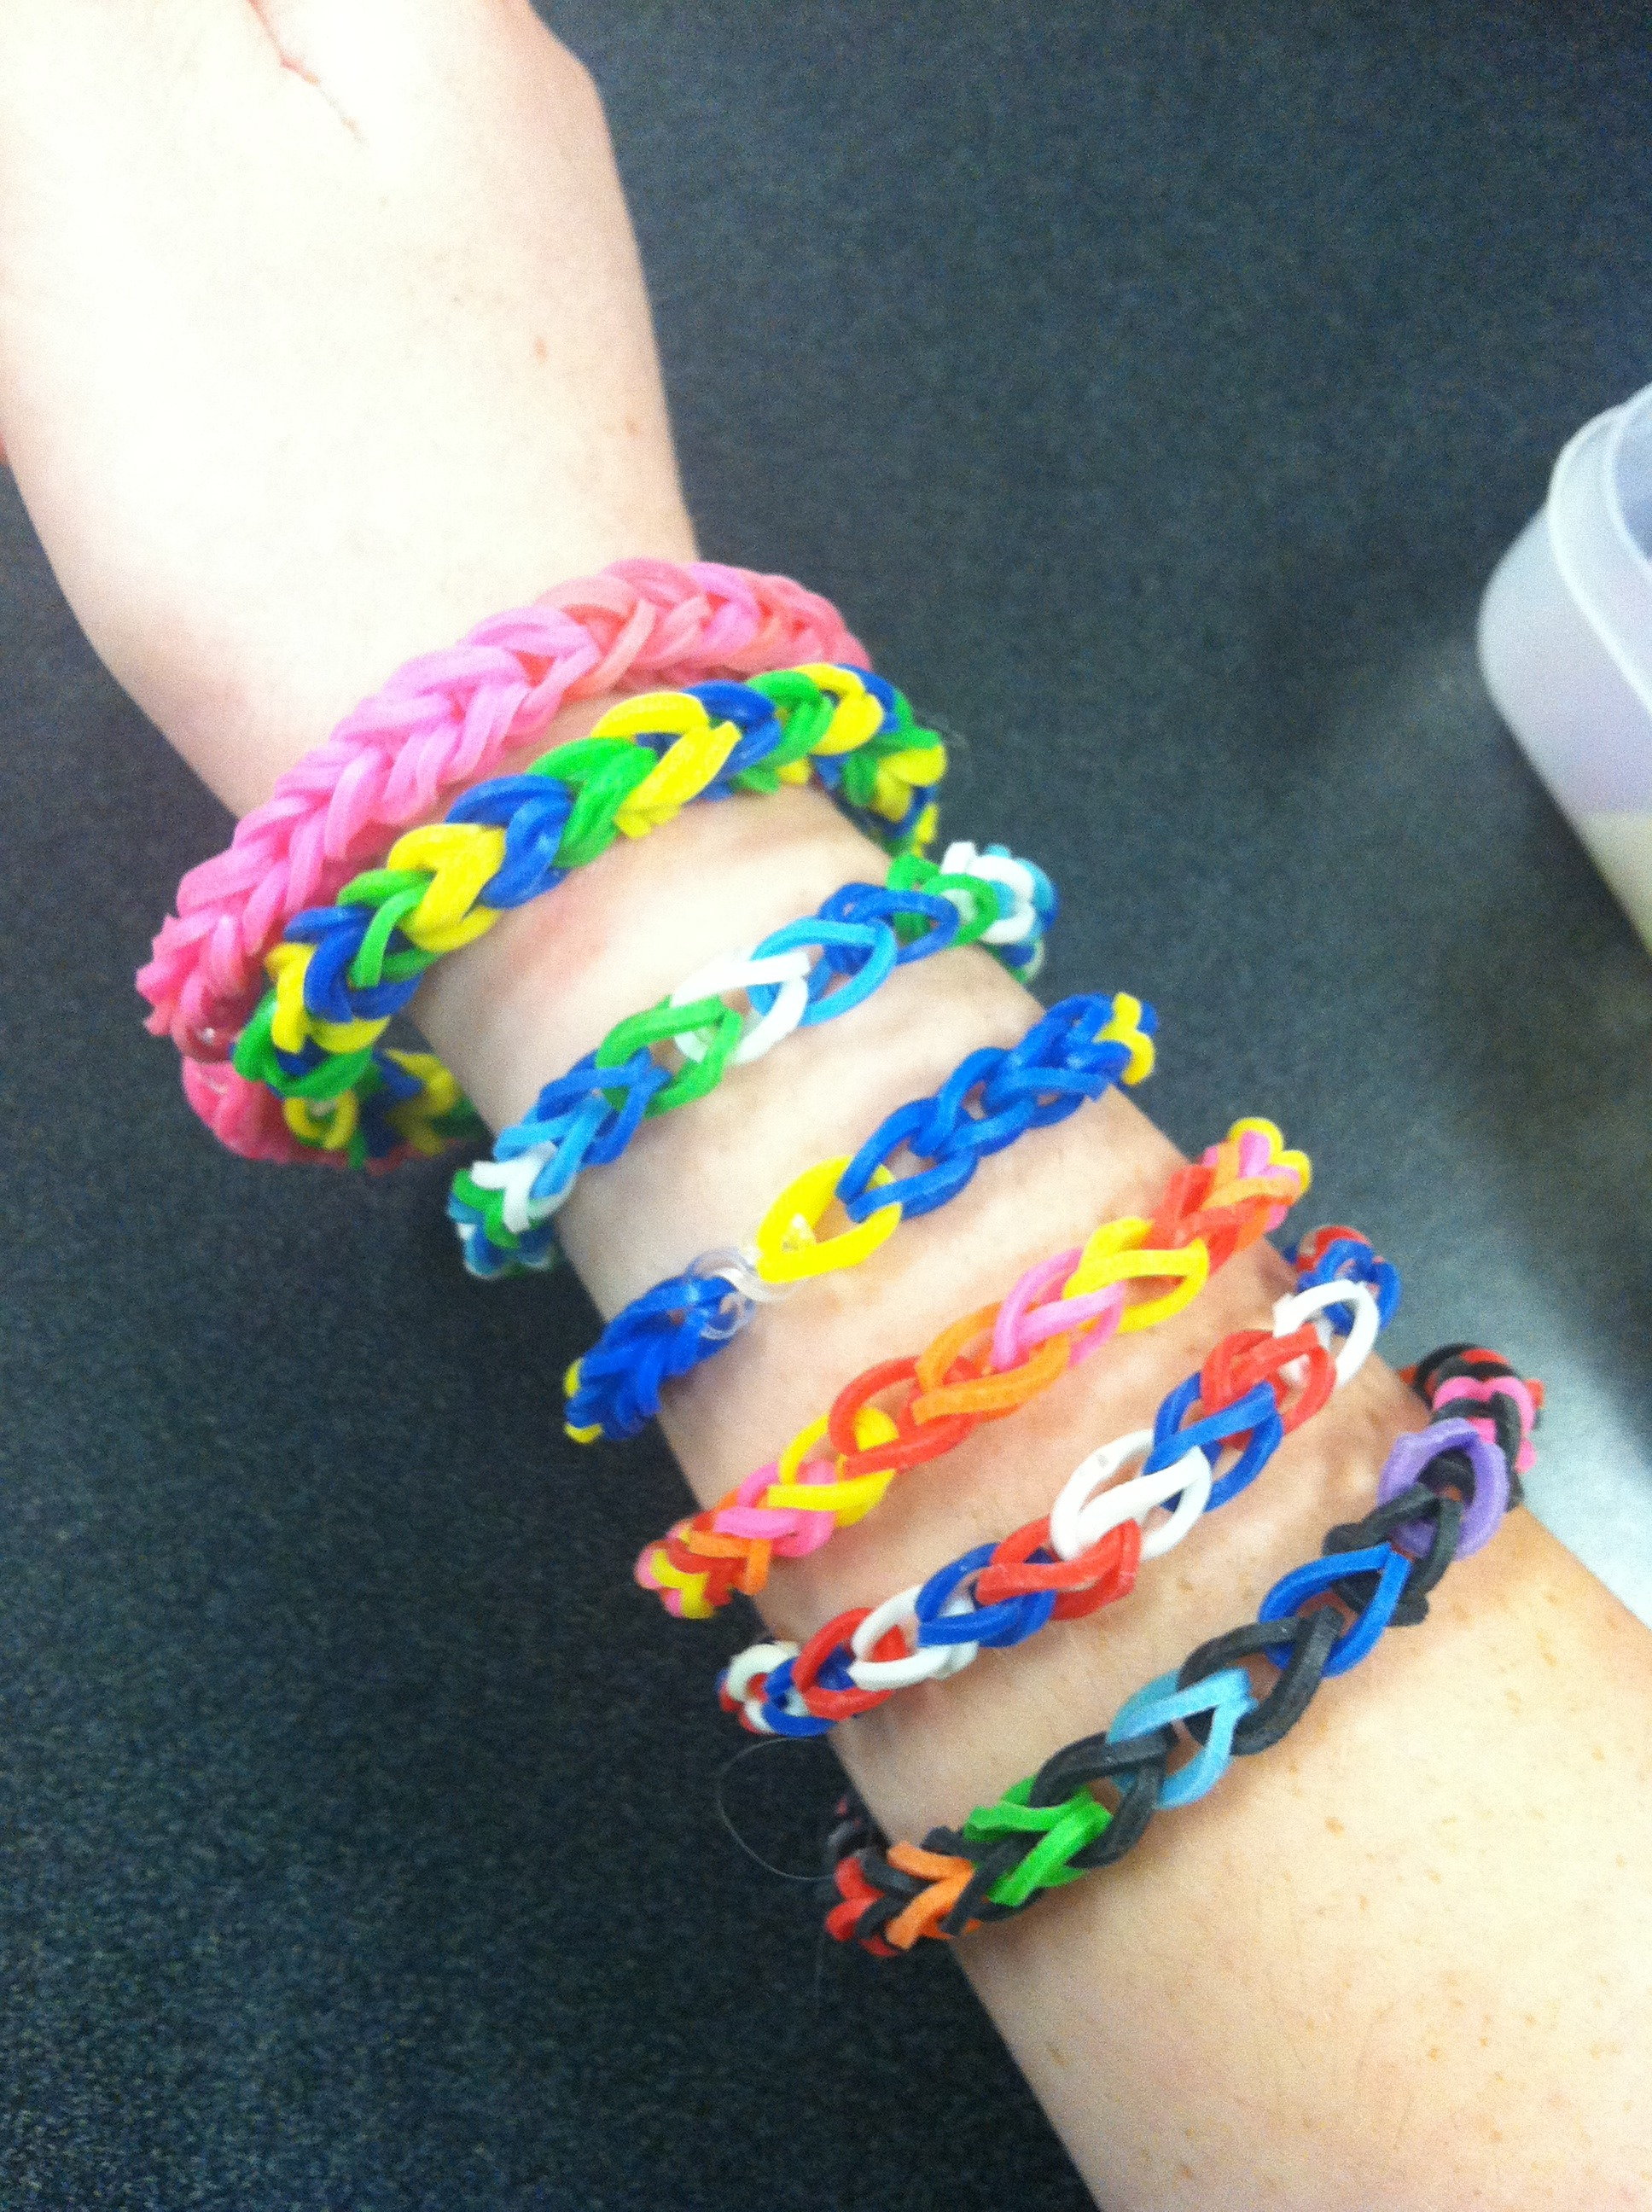 Rainbow Loom Bracelet Without Rainbow Loom With Common Household Objects 5 Steps With Pictures Instructables